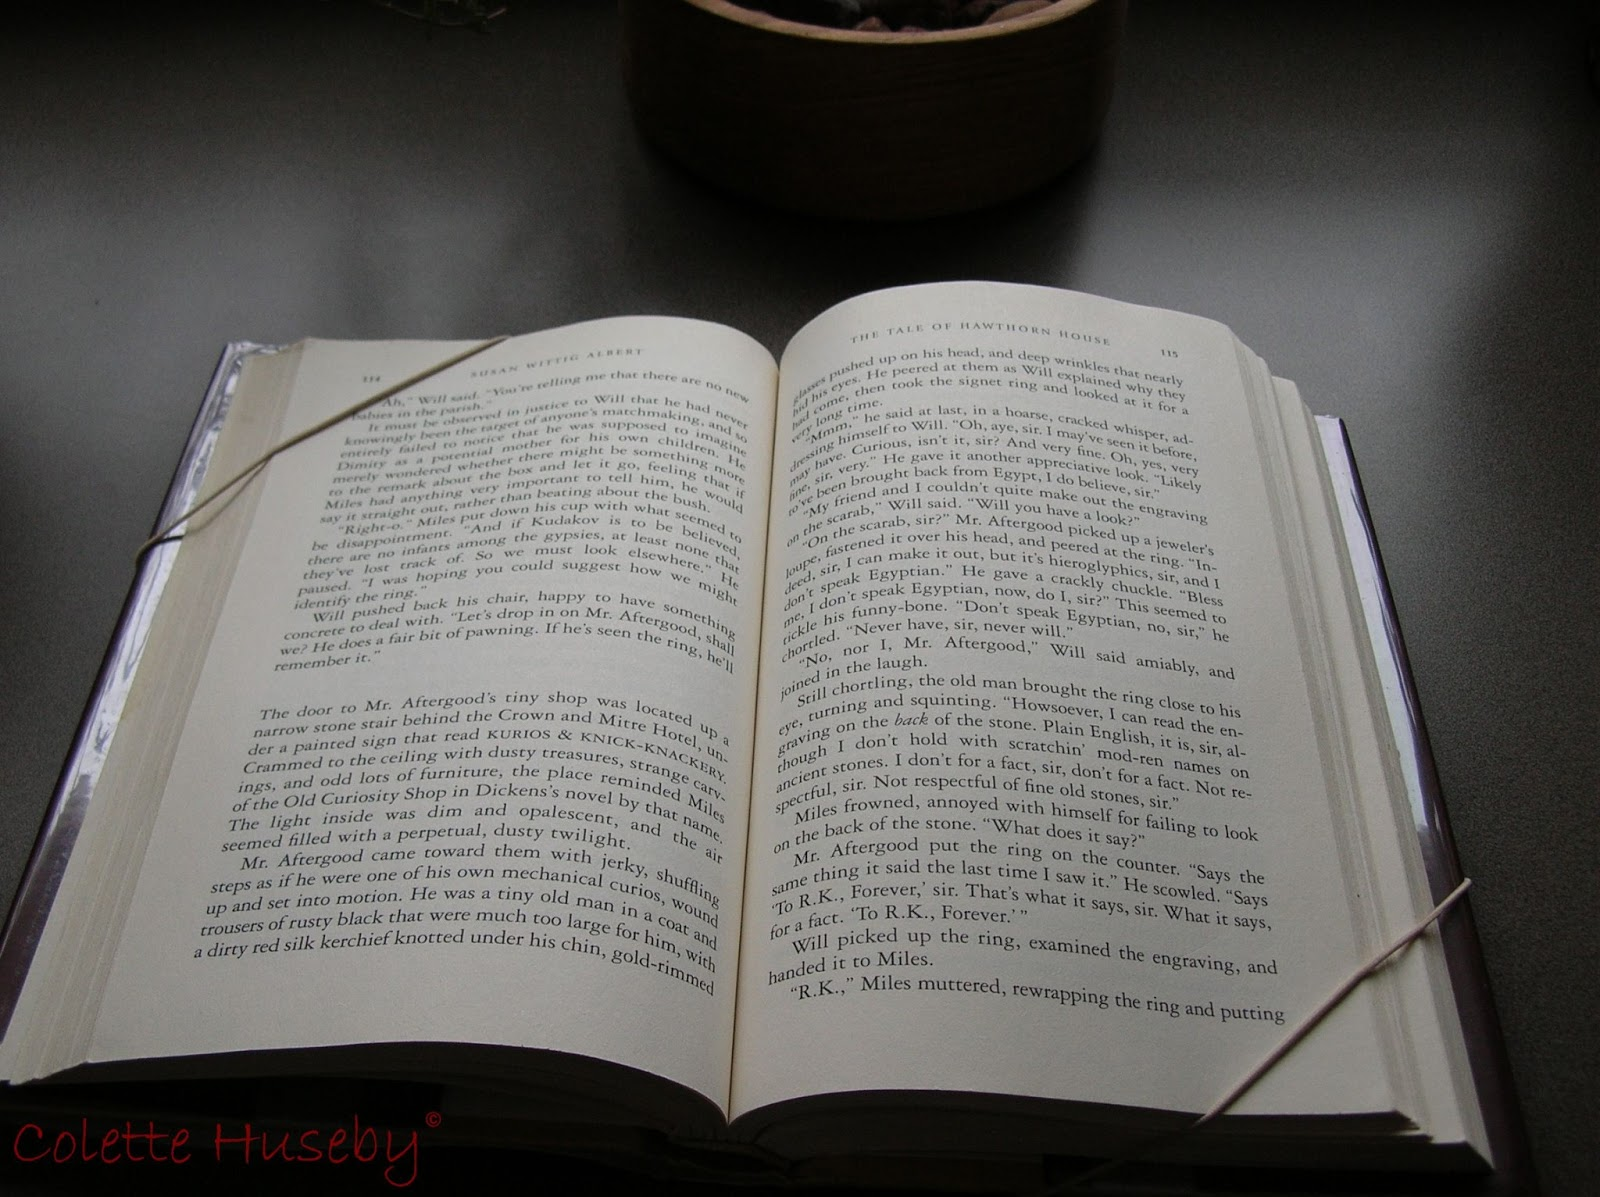 Diy Hardcover Book : Bountiful woods diy page holder for hands free hardcover